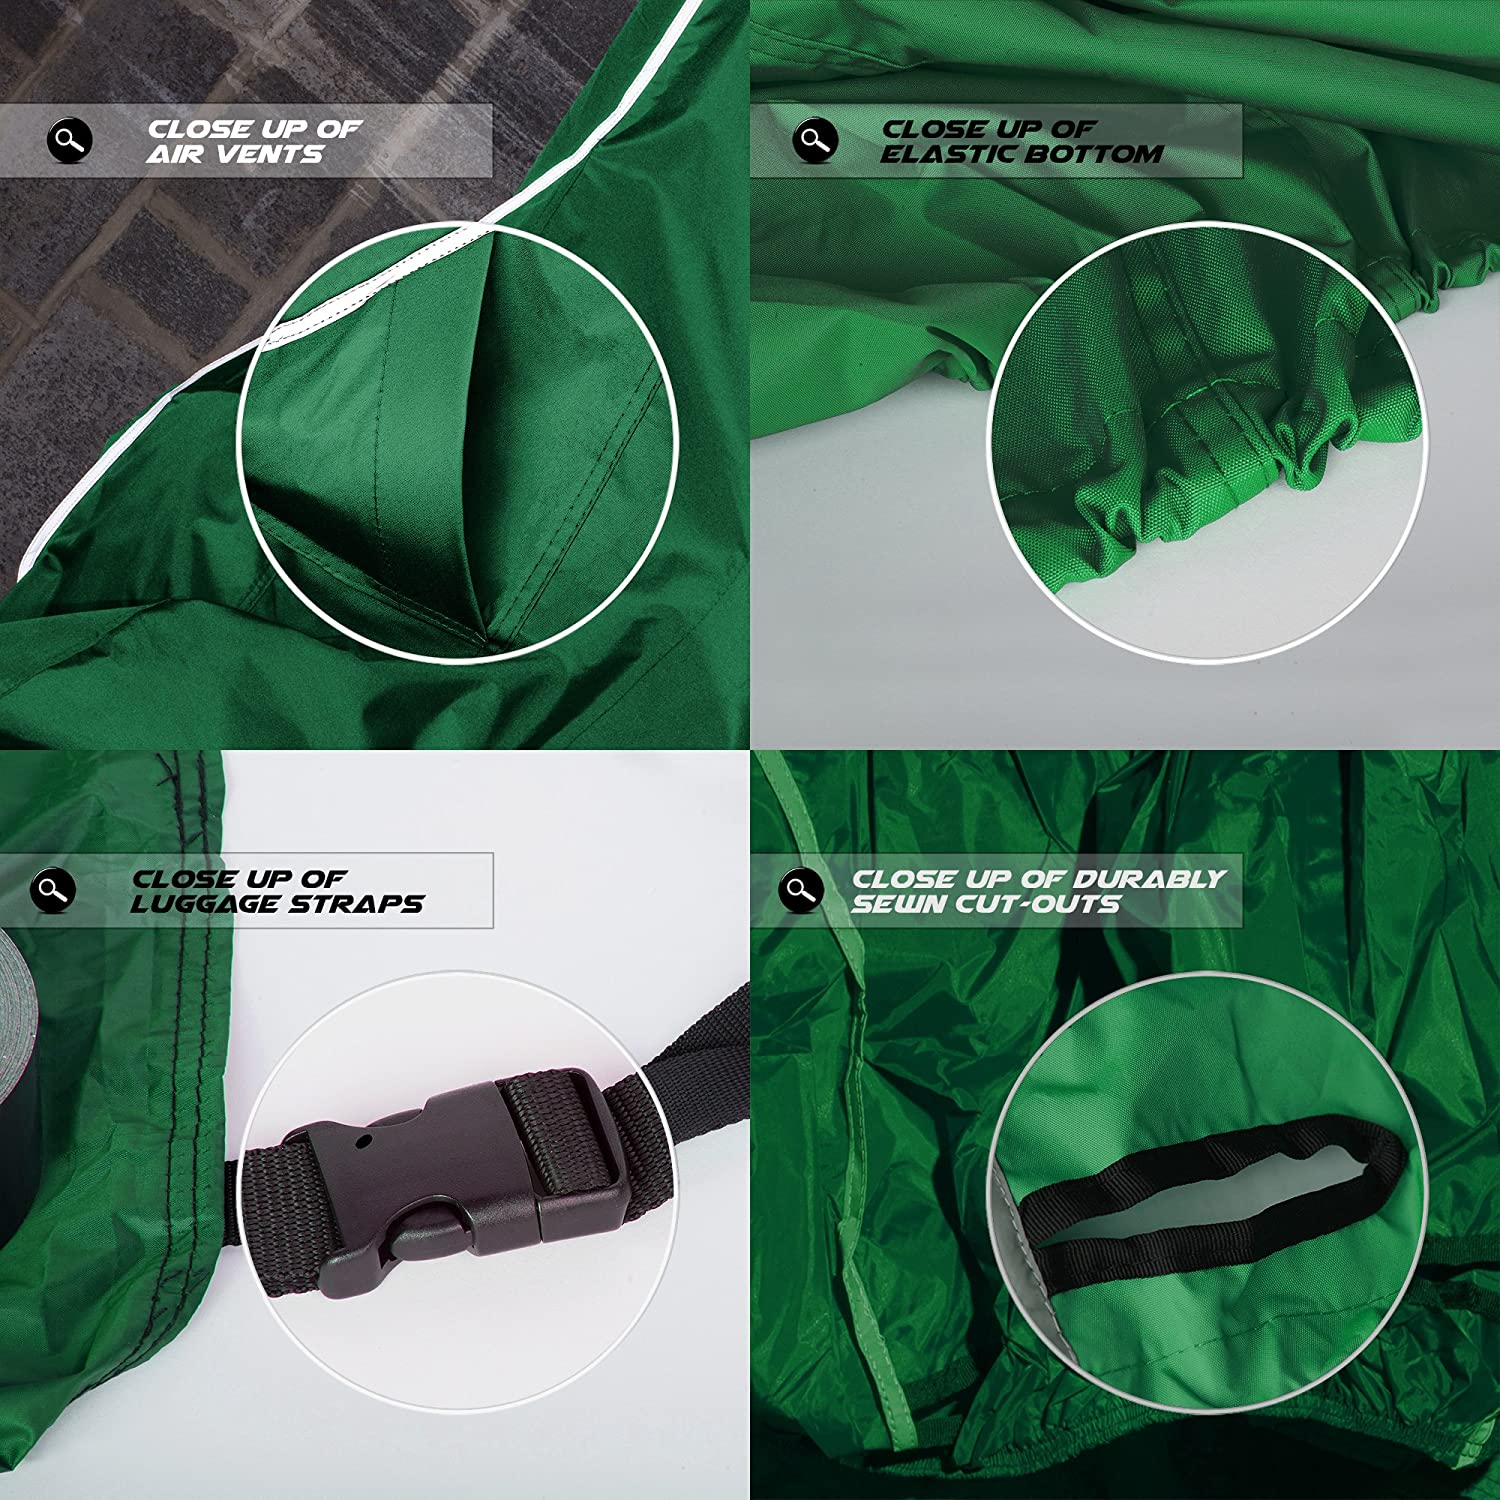 Premium Weather Resistant Covers Waterproof Polyester w//Soft Screen /& Heat Resistant Shields.Motorcycle Cover has Lockable fabric Medium, Hunter Green Ondaupswing Inc 76-1 Durable /& Long Lasting.Sportbikes /& Cruisers